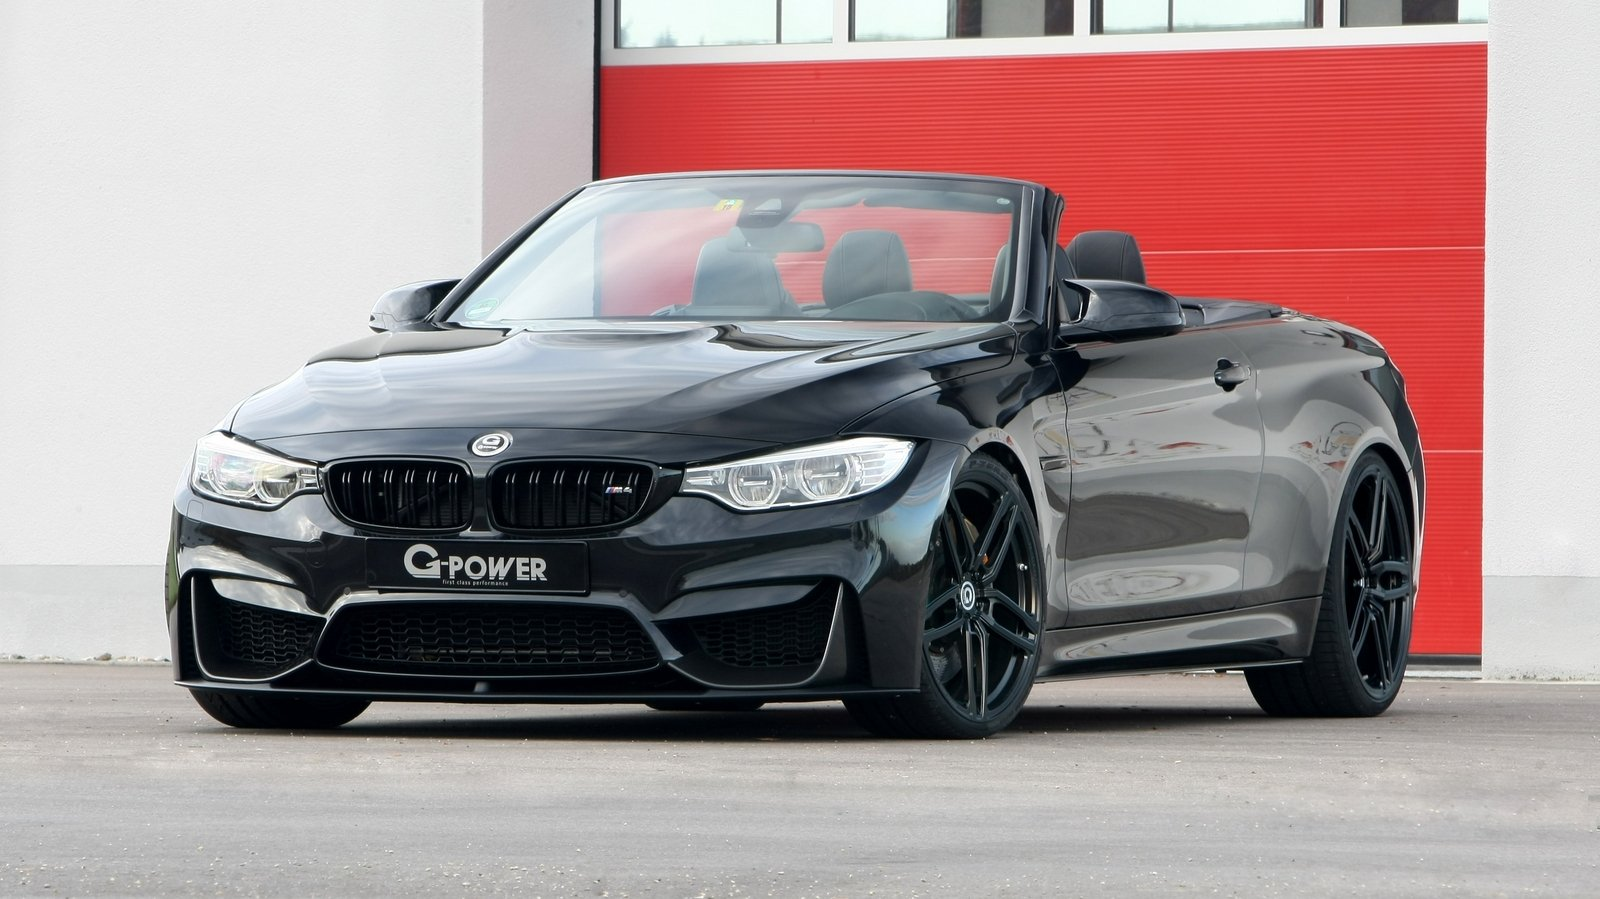 2016 bmw m4 convertible by g power pictures photos. Black Bedroom Furniture Sets. Home Design Ideas